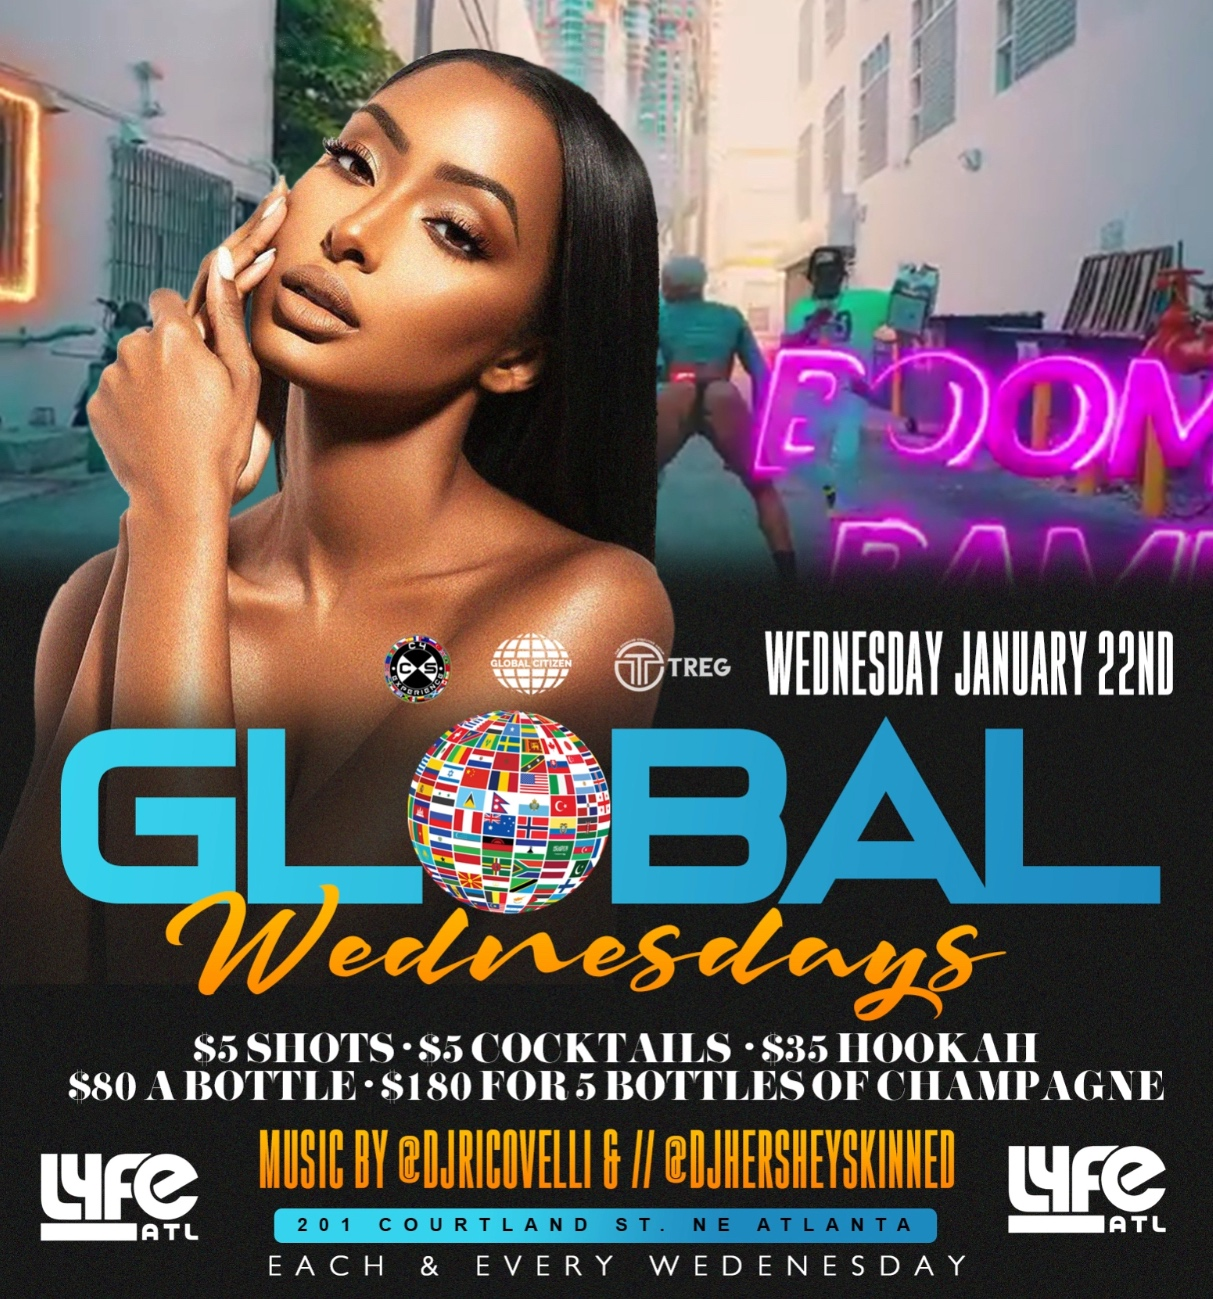 GLOBAL WEDNESDAY